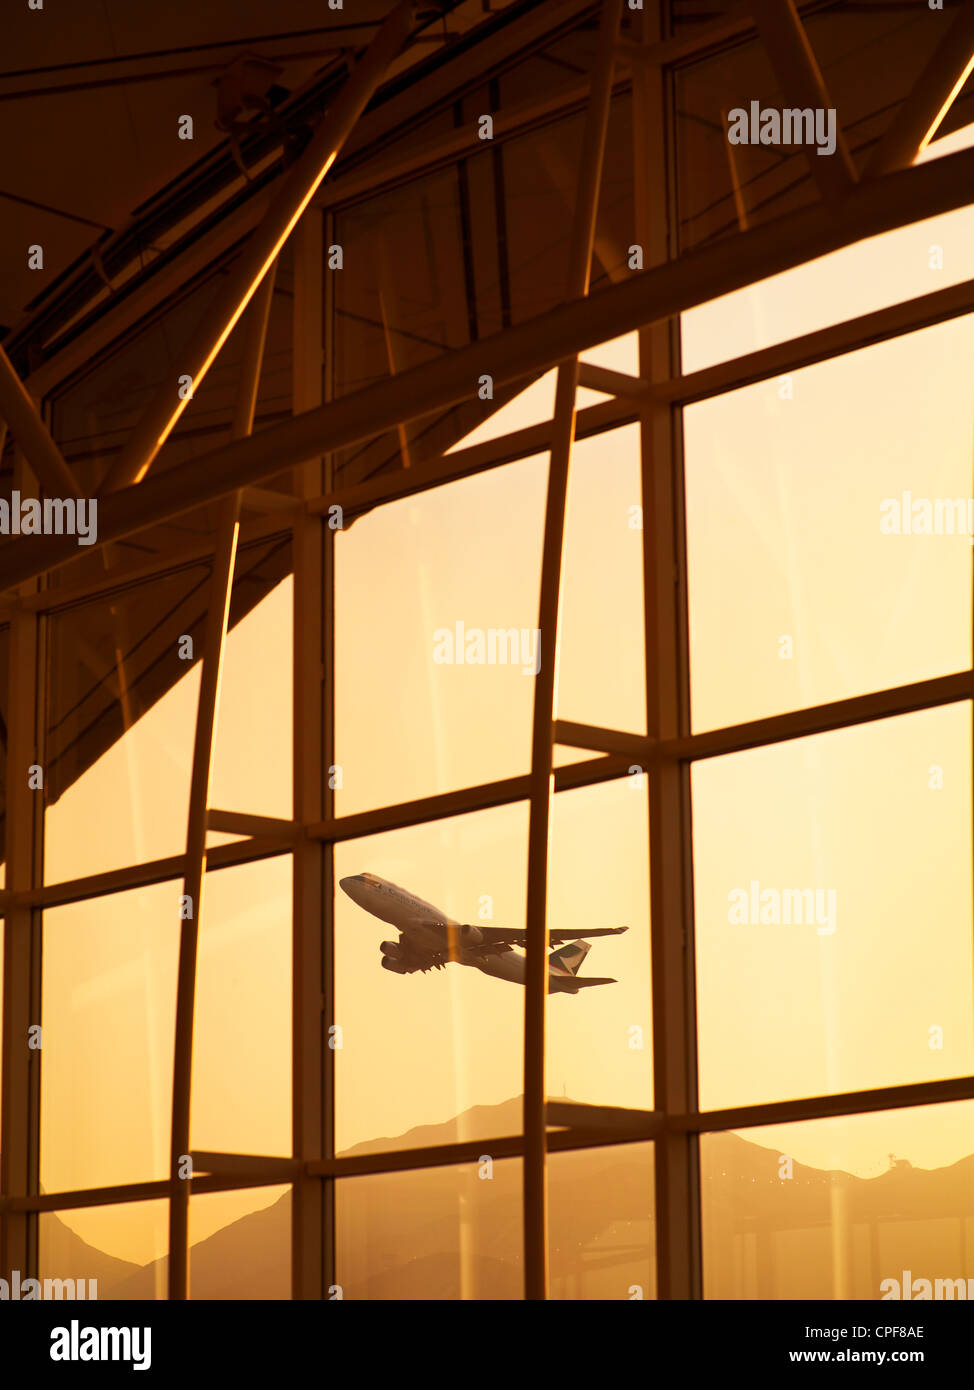 A sunset view of airplanes taking off at the Hong Kong International Airport on New Years Eve. December 31, 2010. - Stock Image